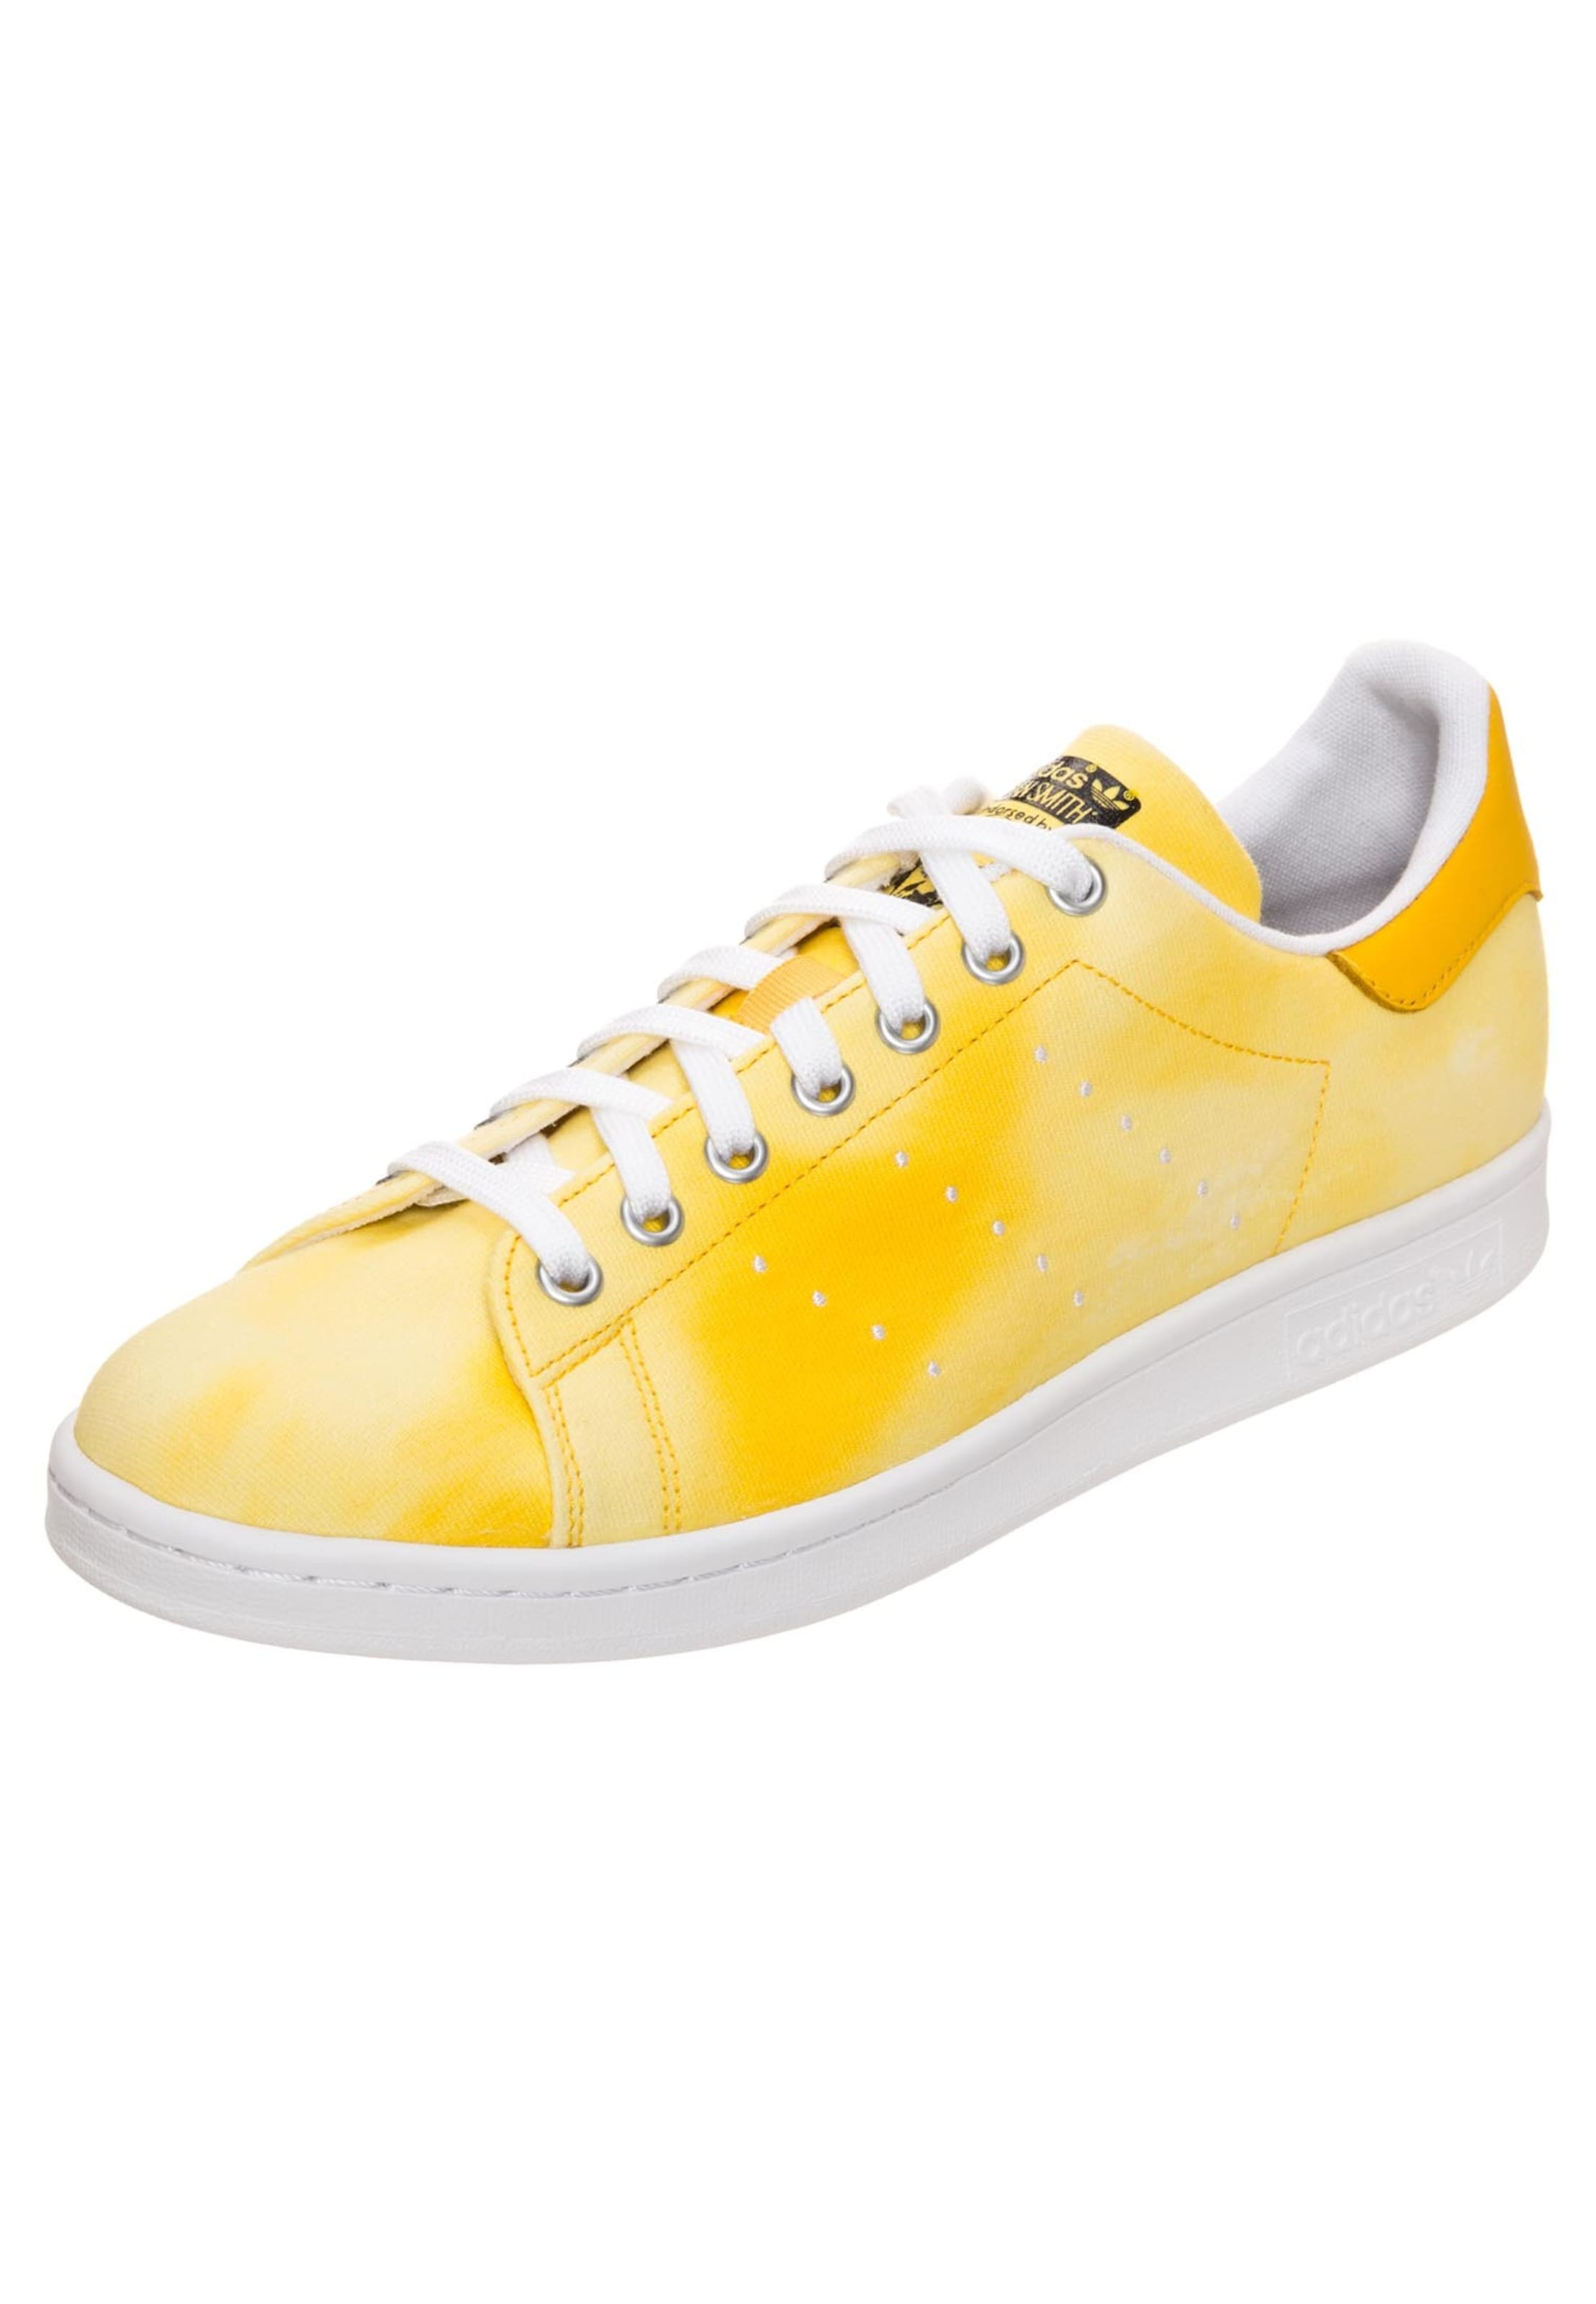 ADIDAS ORIGINALS Sneaker  PW HU Holi Stan Smith Unisex